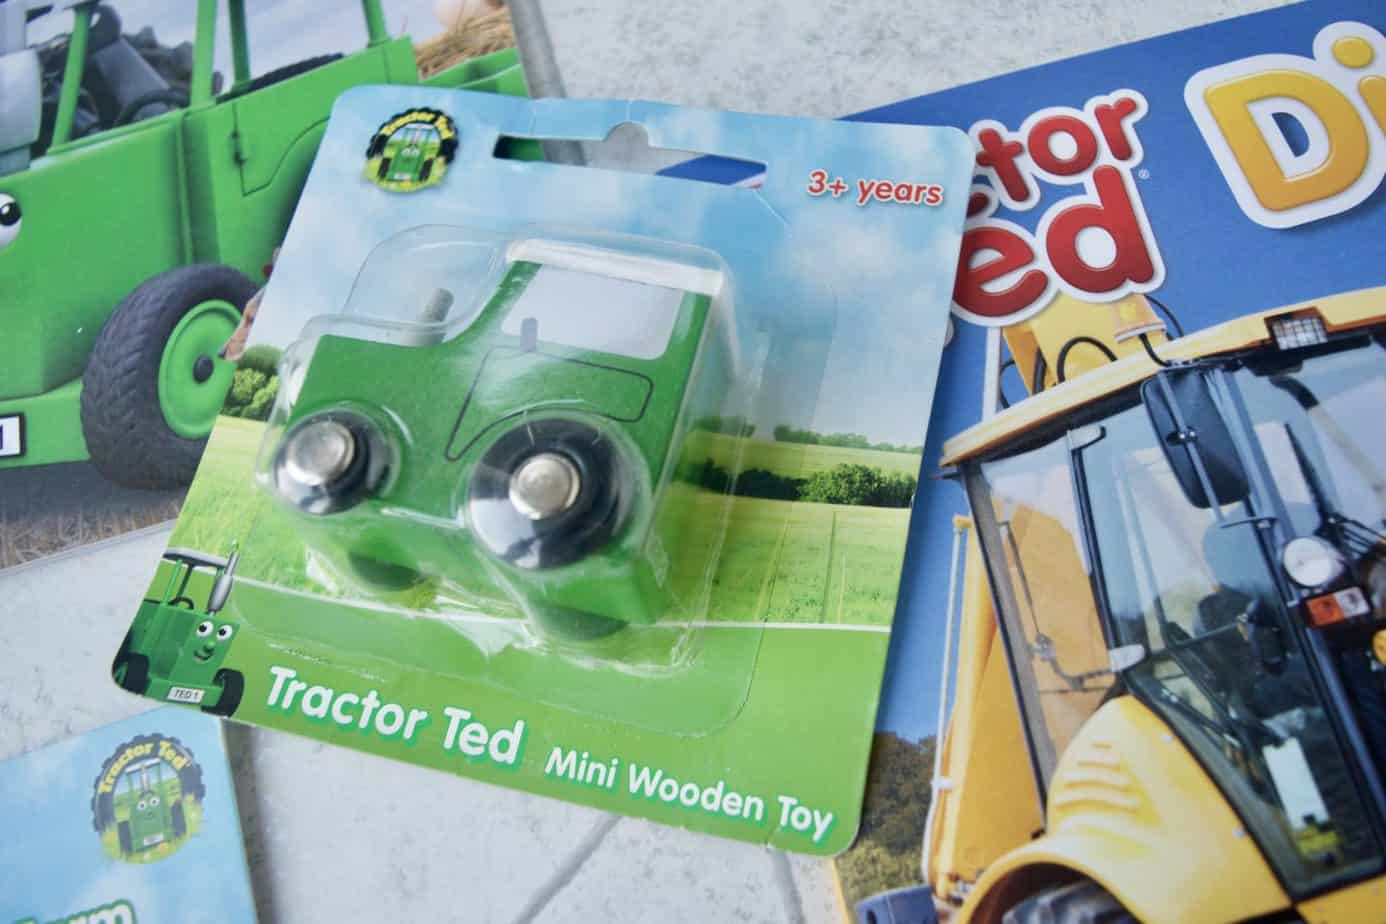 Tractor Ted wooden toy in green